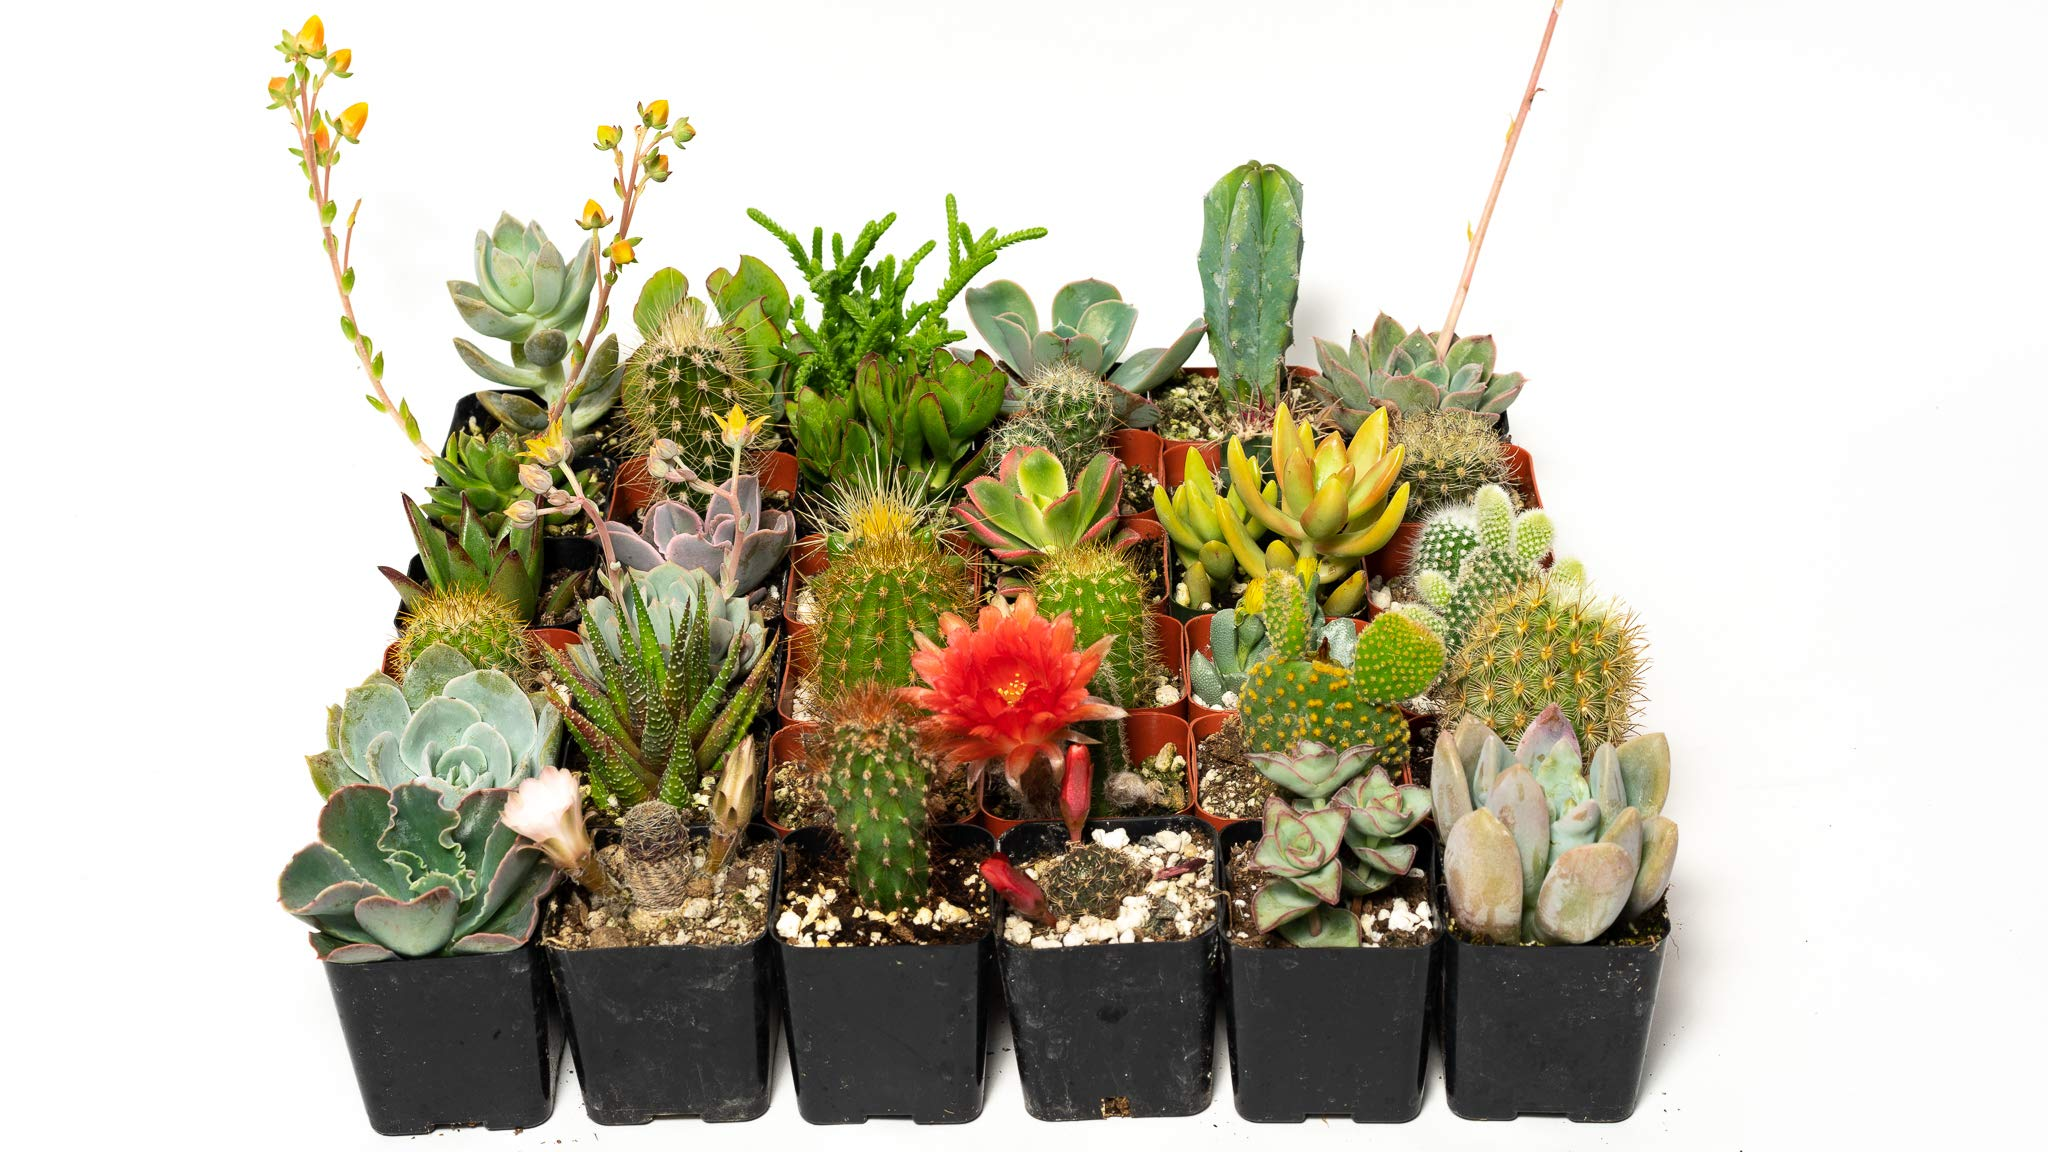 36 Succulent & Cactus Variety Pack- No Two Plants are Alike, Make Your Garden Unique with A Beautiful Collection of Succulents and Cacti - by Jiimz by Jiimz (Image #2)